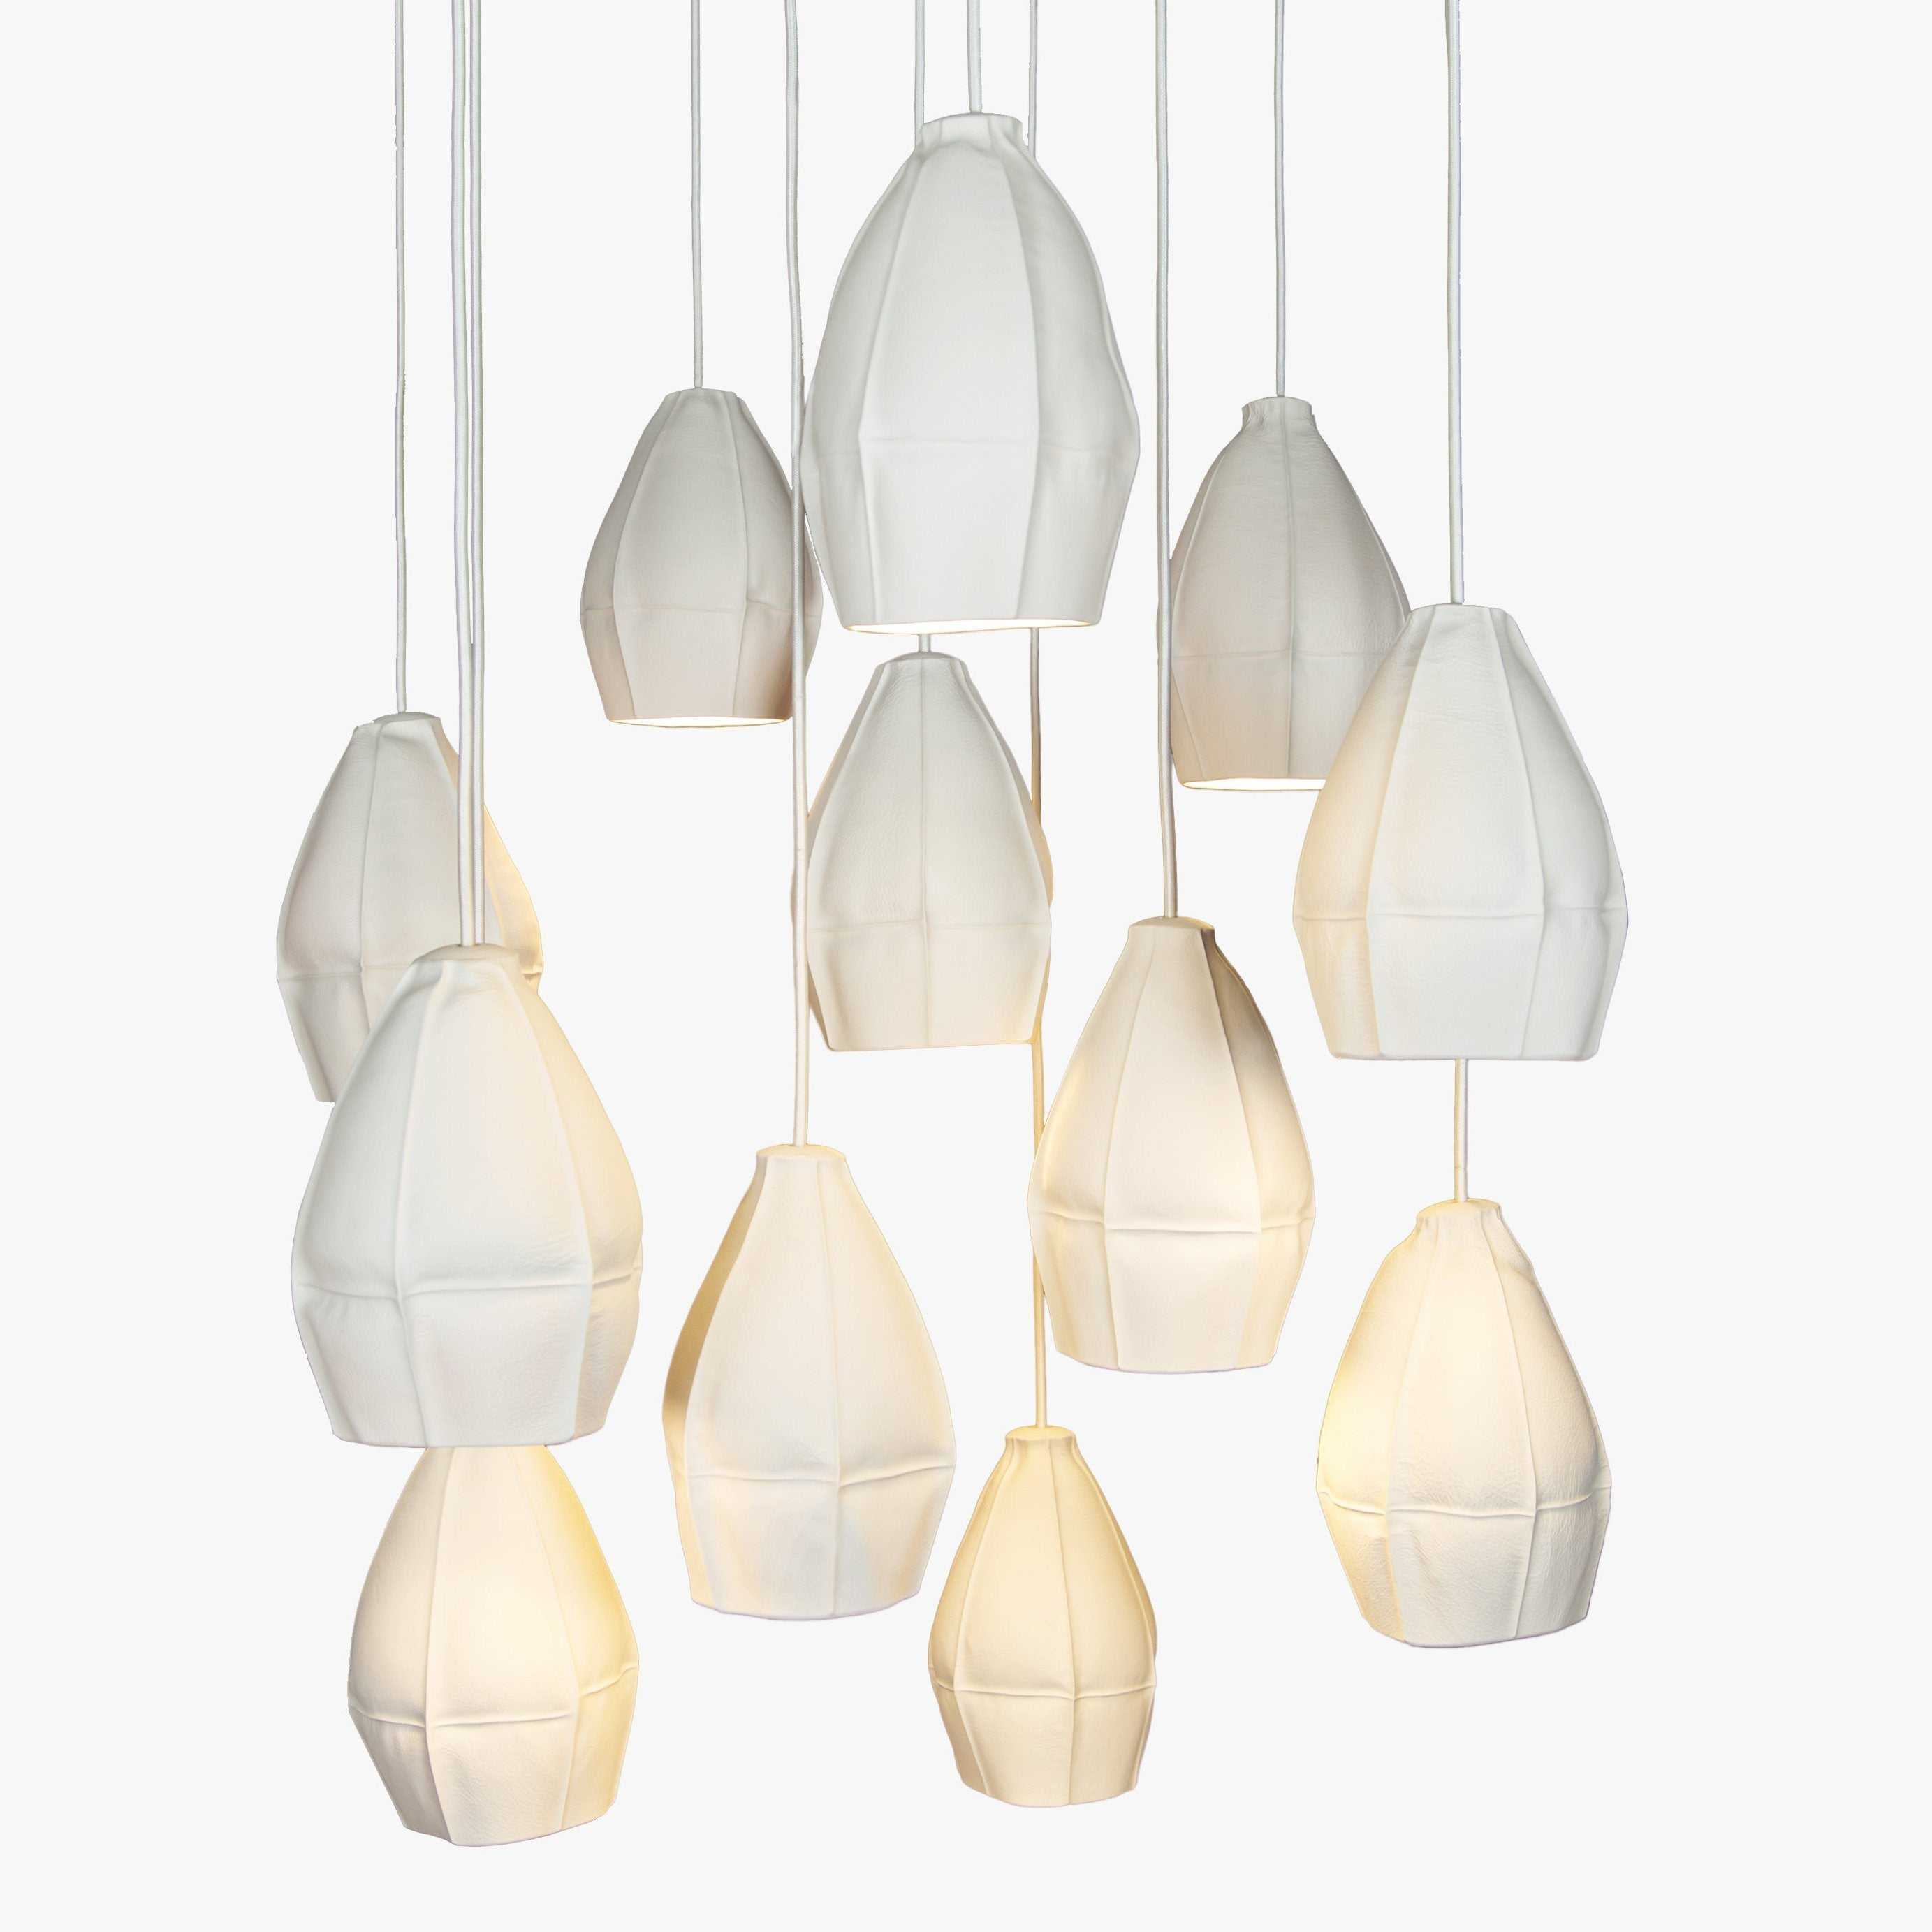 Souda Kawa Pendants - Cluster of 12